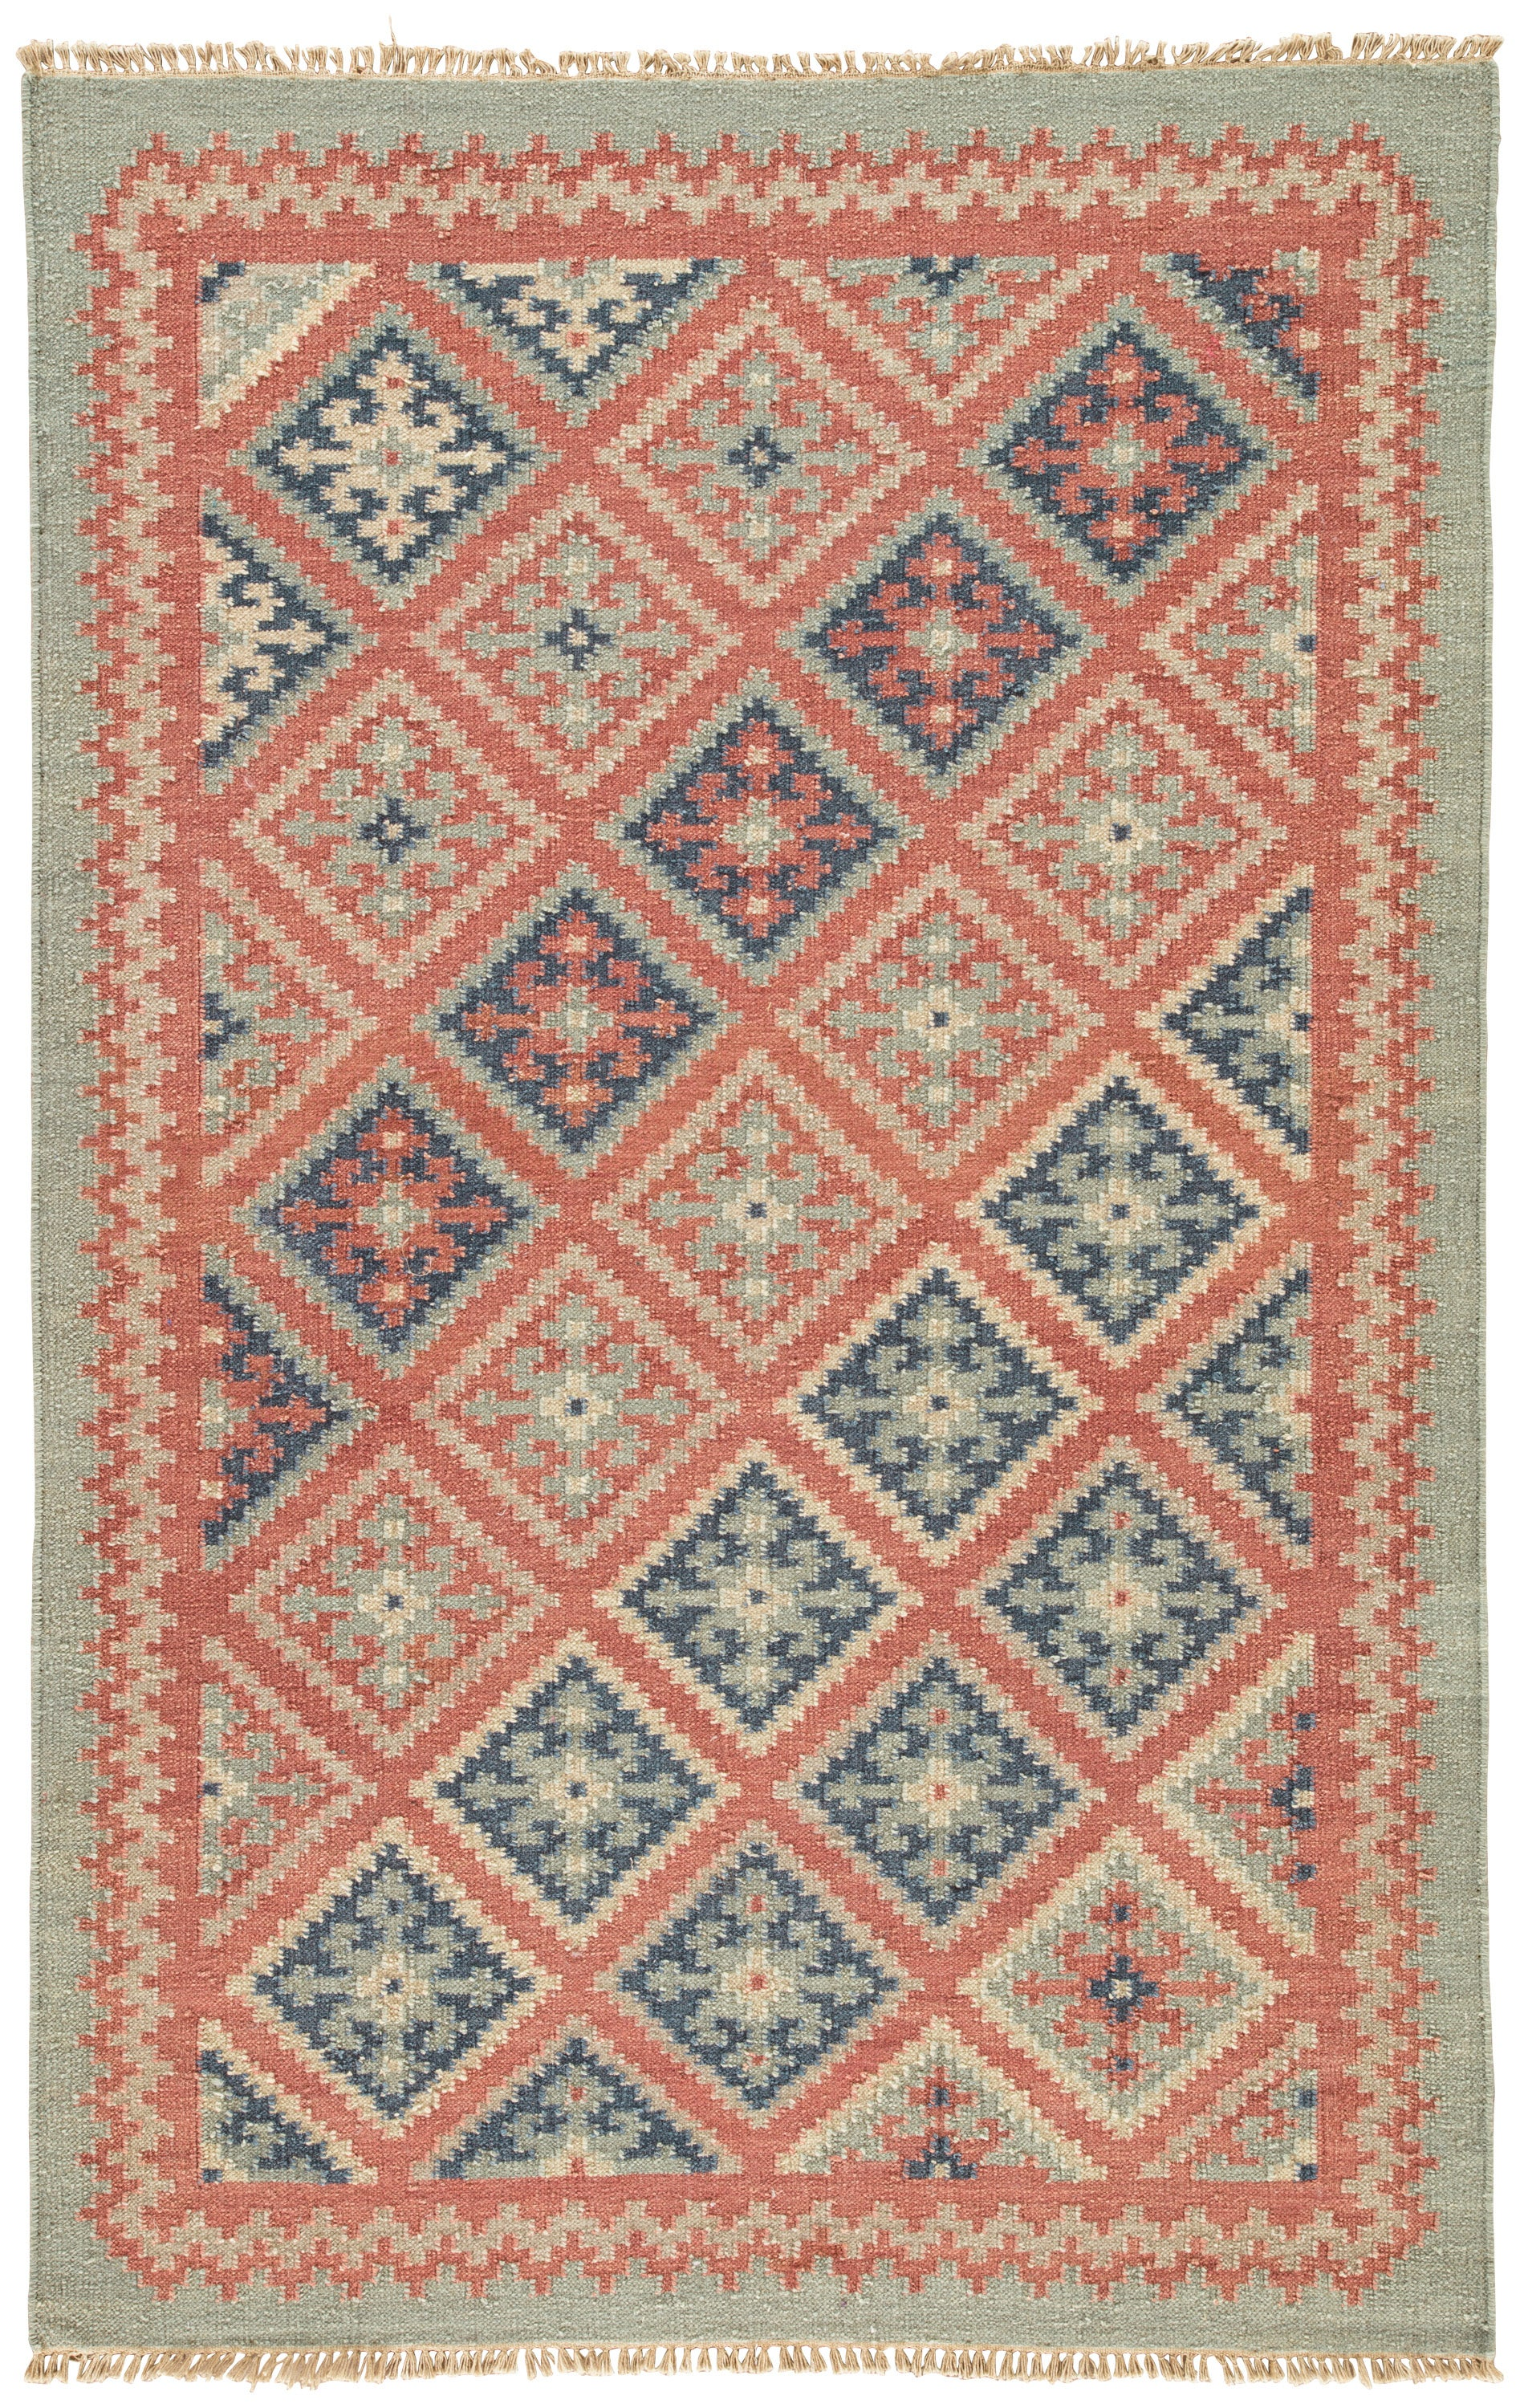 Rectangle 5x8 Red Geometric Dhurrie Wool Southwestern recommended for Bedroom, Bathroom, Dining Room, Office, Hallway, Living Room